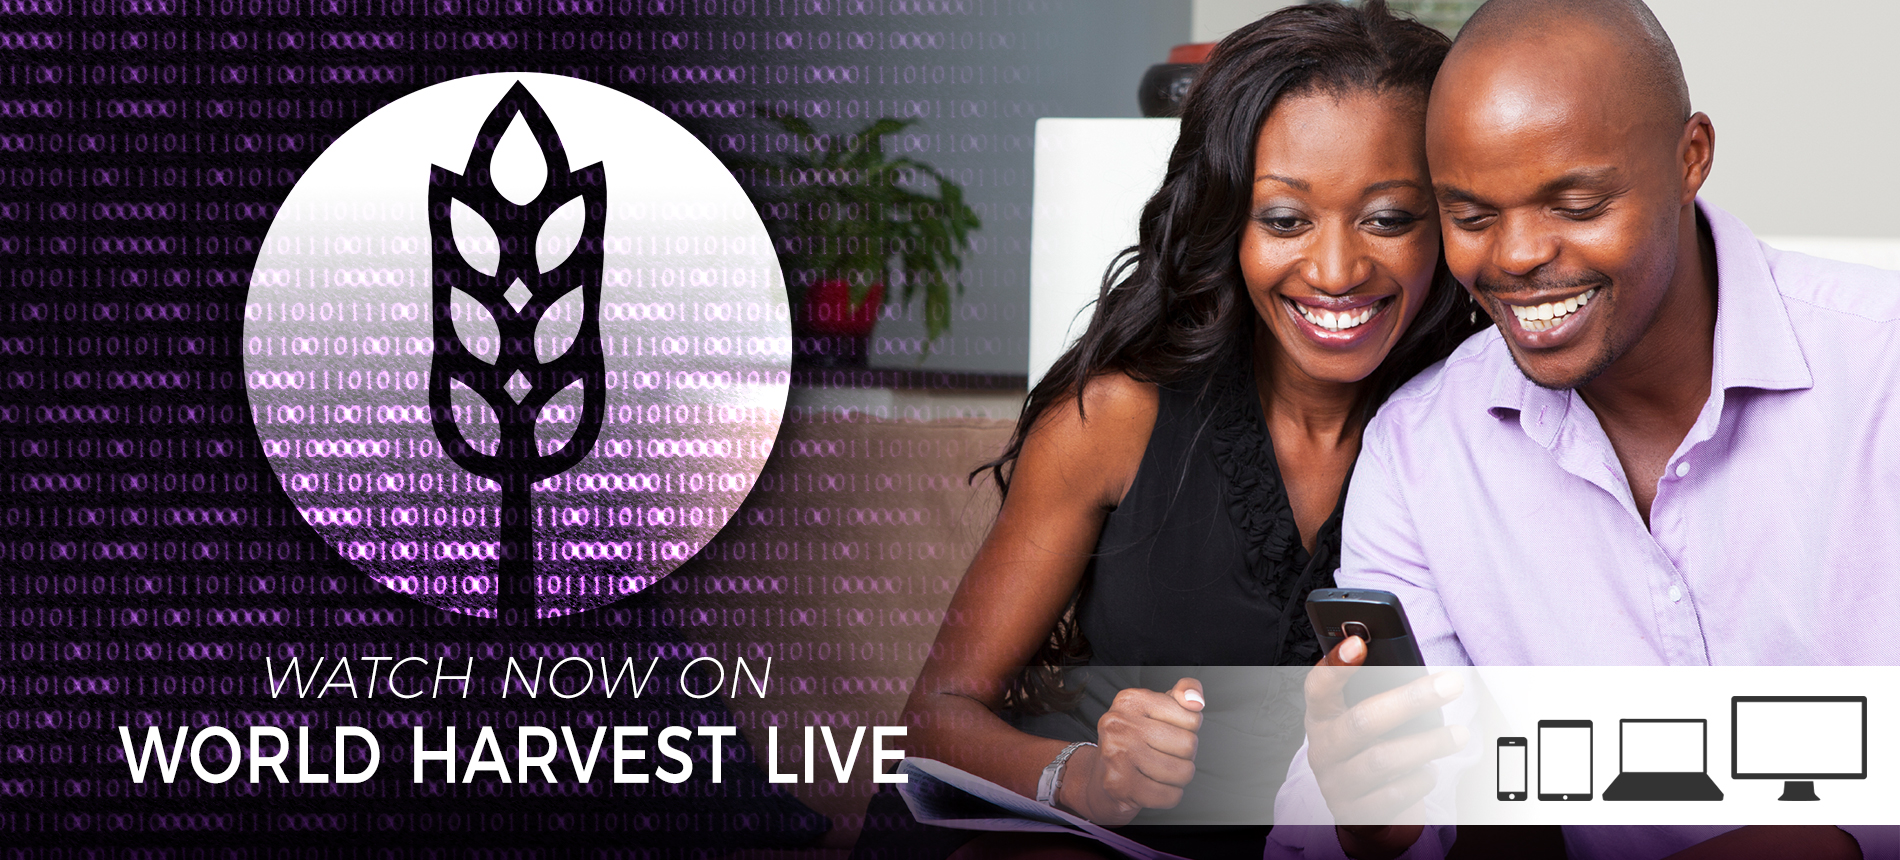 WHCE | Watch World Harvest Live